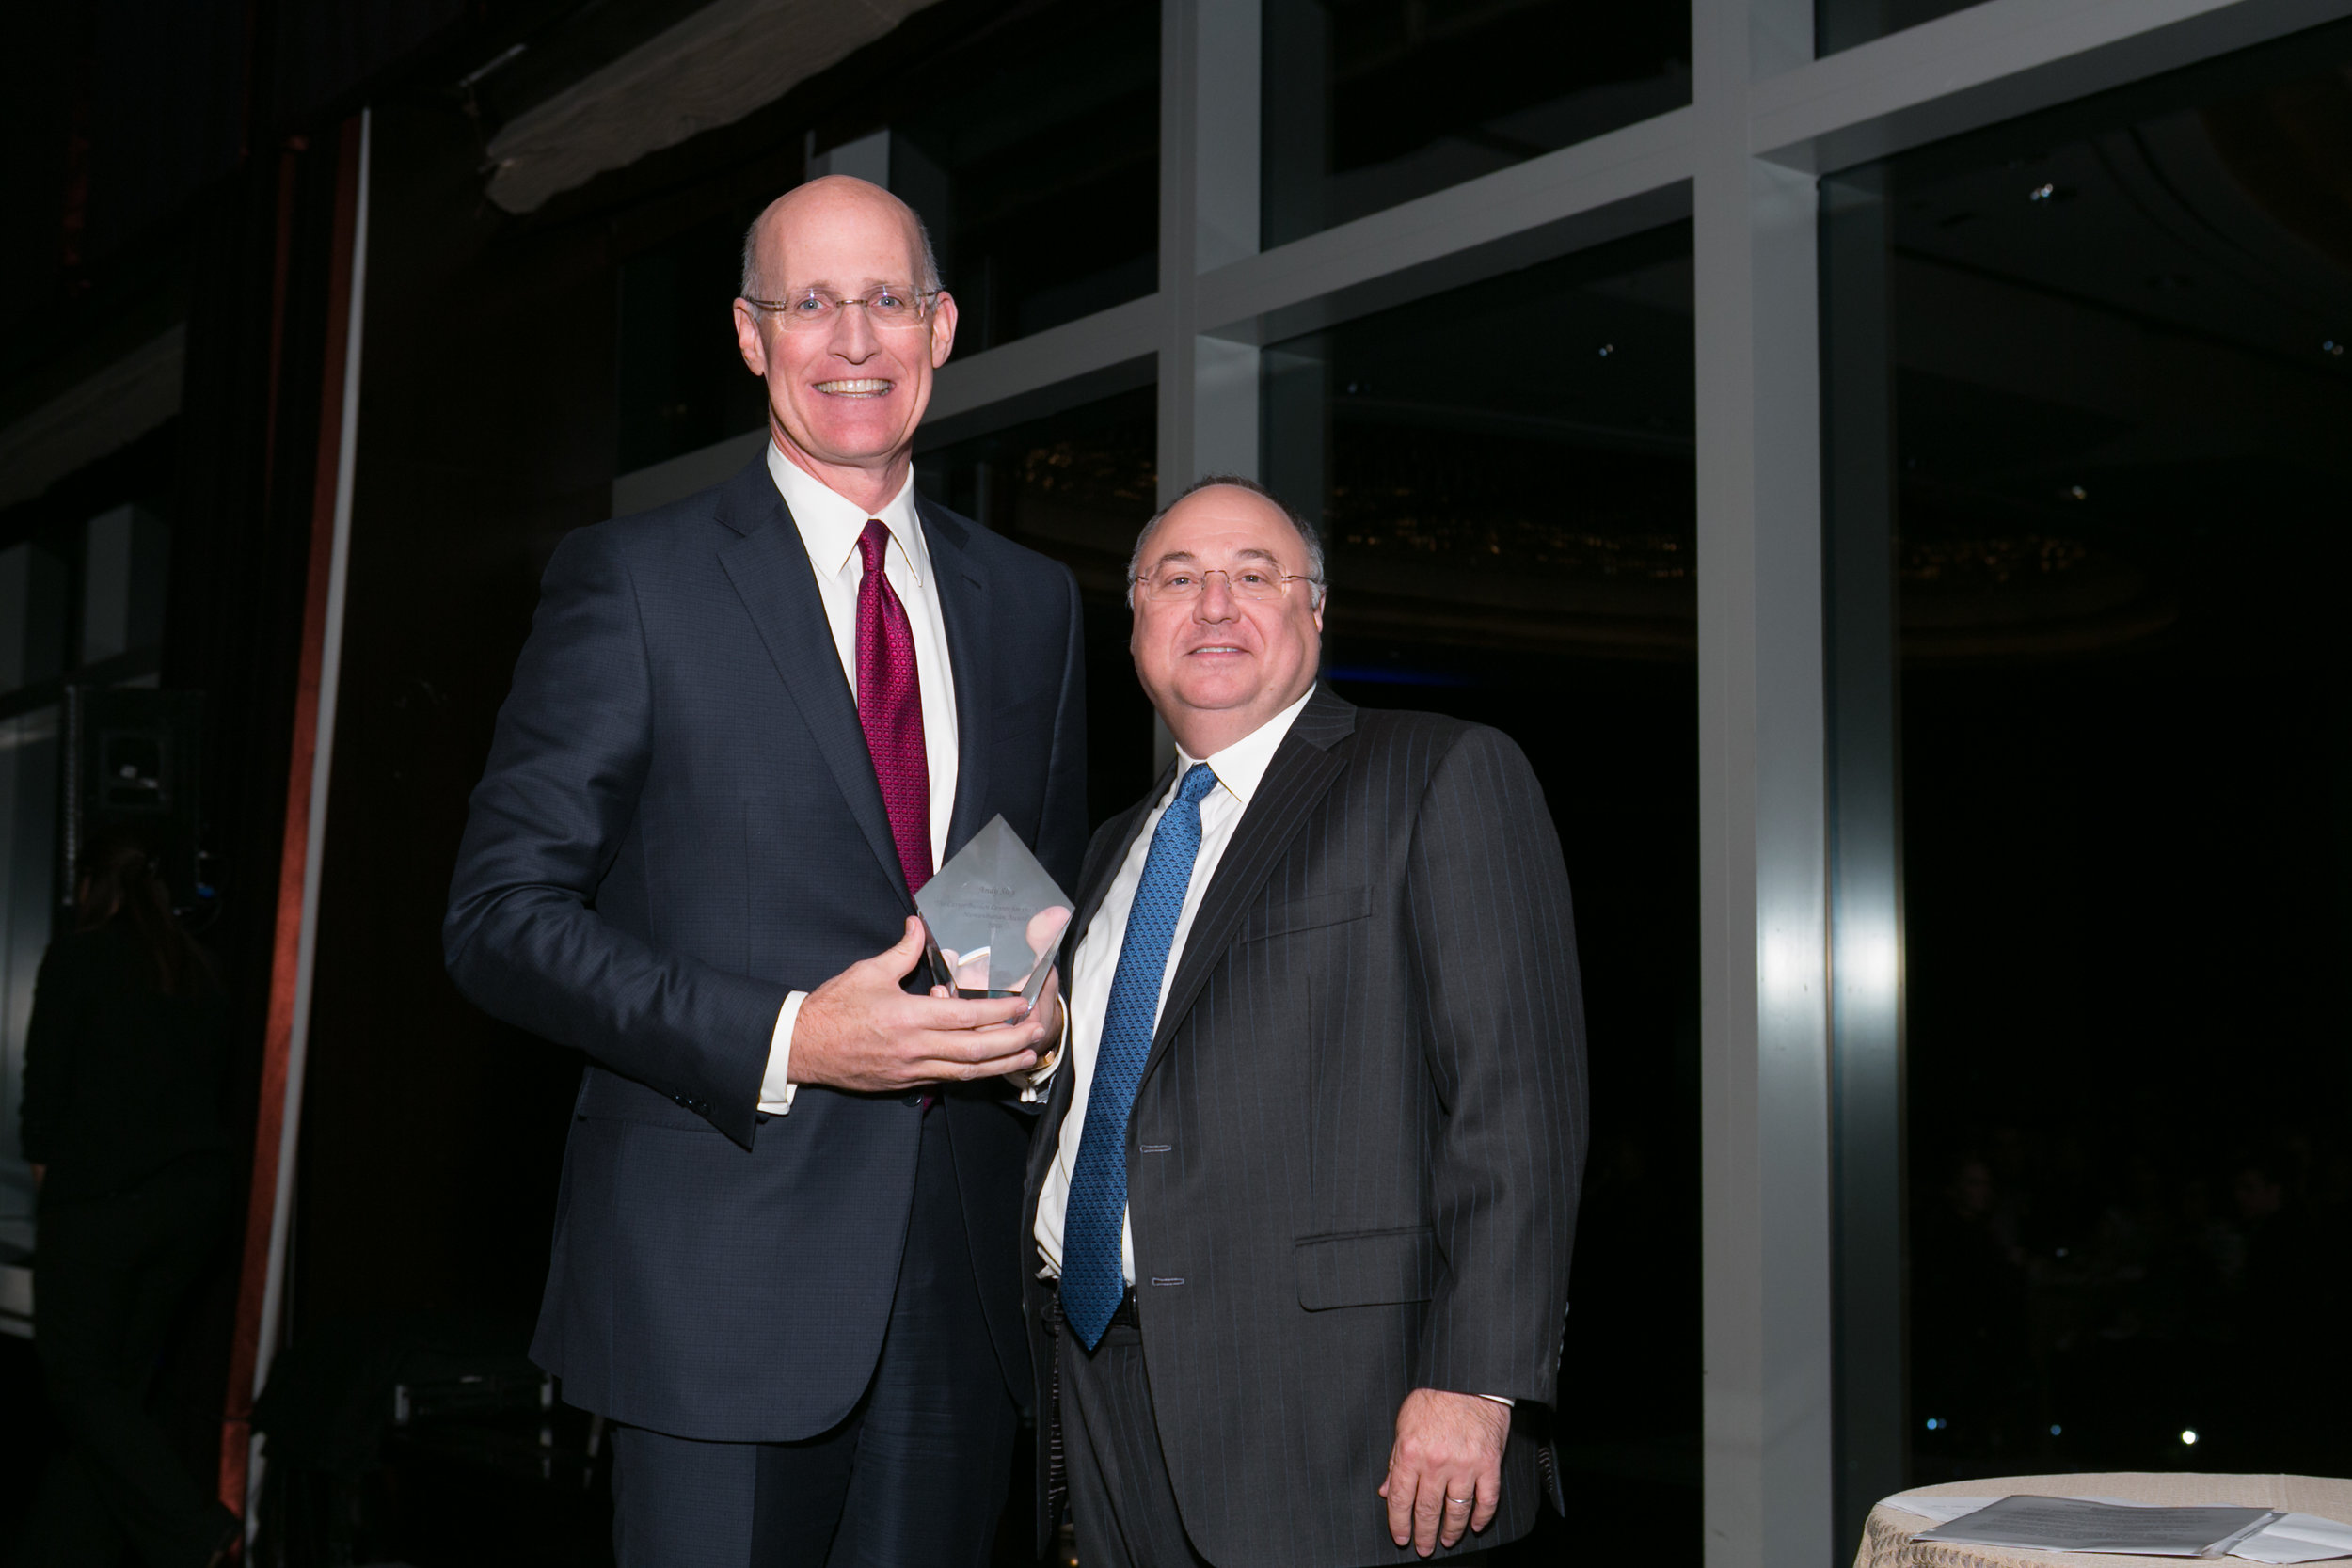 Andy Sieg   , Head of Global Wealth & Retirement Solutions, Bank of America Merrill Lynch, 2016 Humanitarian Honoree accepting his award from  Jeffrey A. Weber , Board Chairman, Carter Burden Network